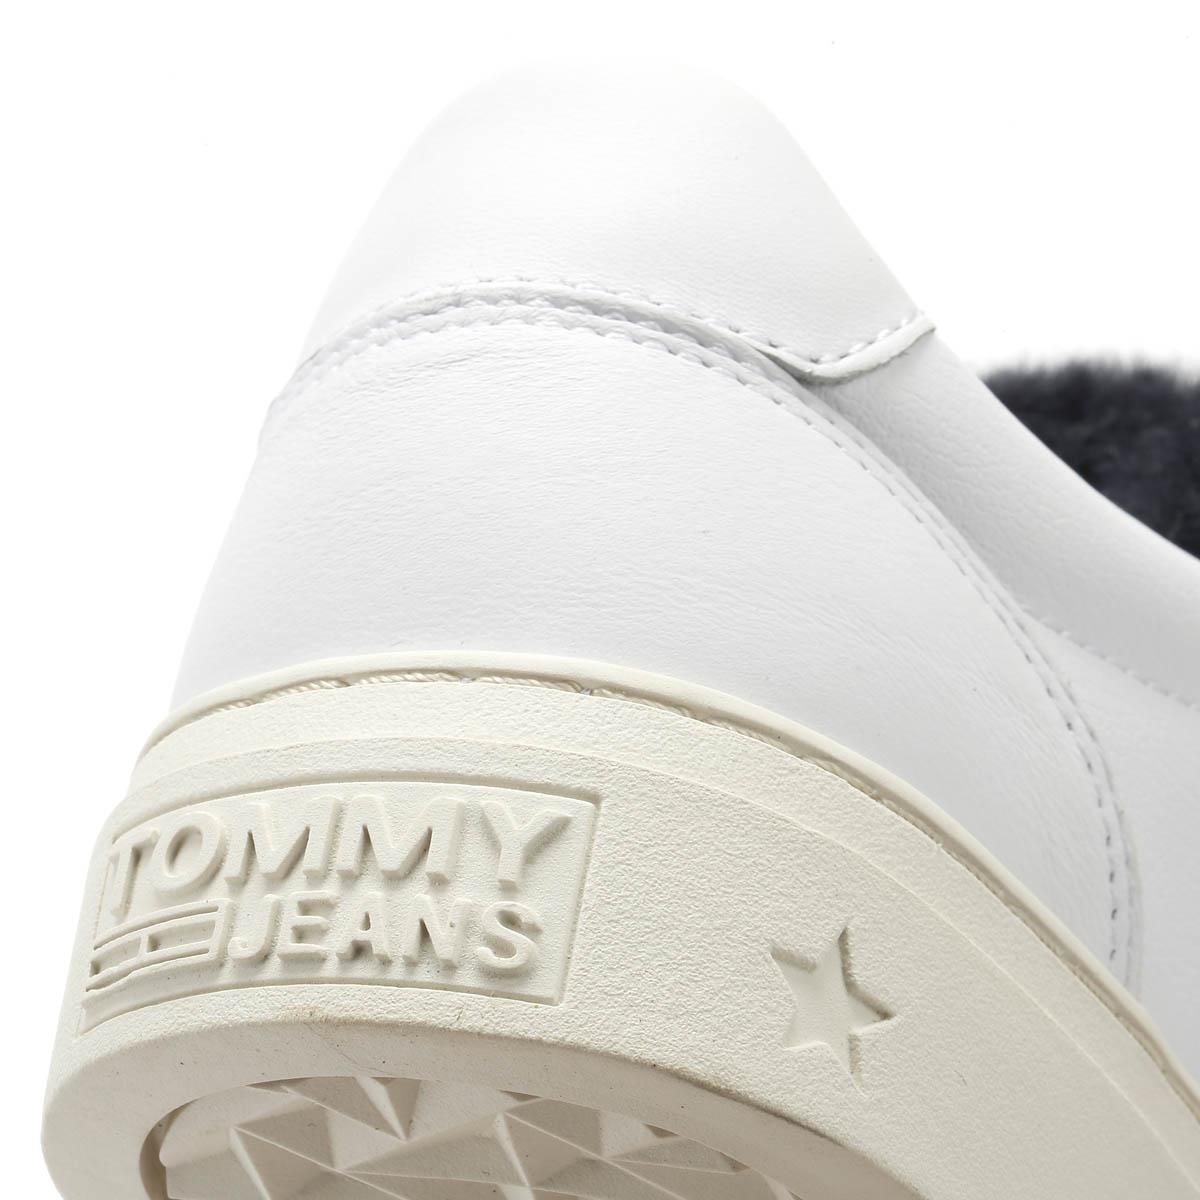 b27a87d54 Tommy Hilfiger - Womens White Funny Fur Star Trainers Women s Shoes ( trainers) In Multicolour. View fullscreen